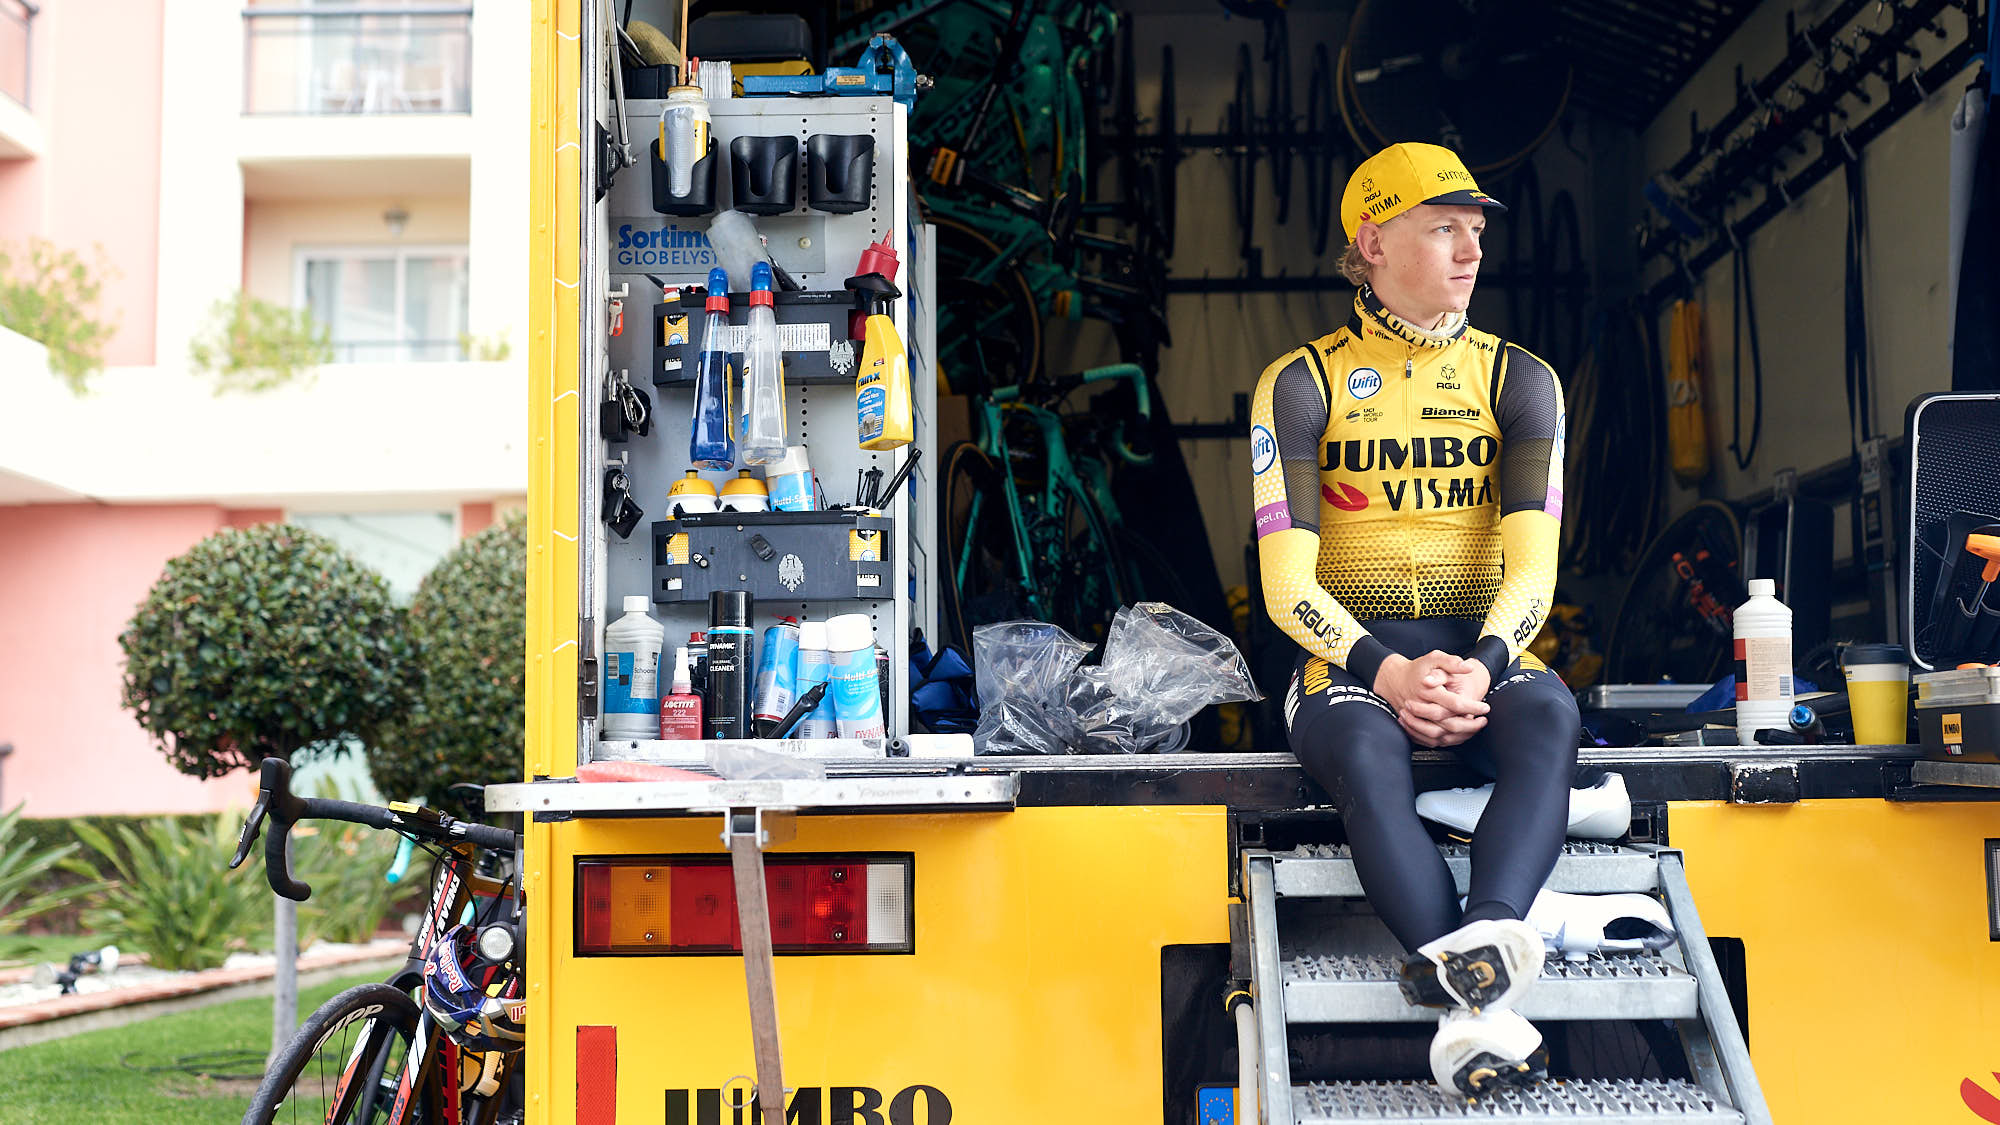 Cyclist Koen Bouwman in the mechanics' truck before training